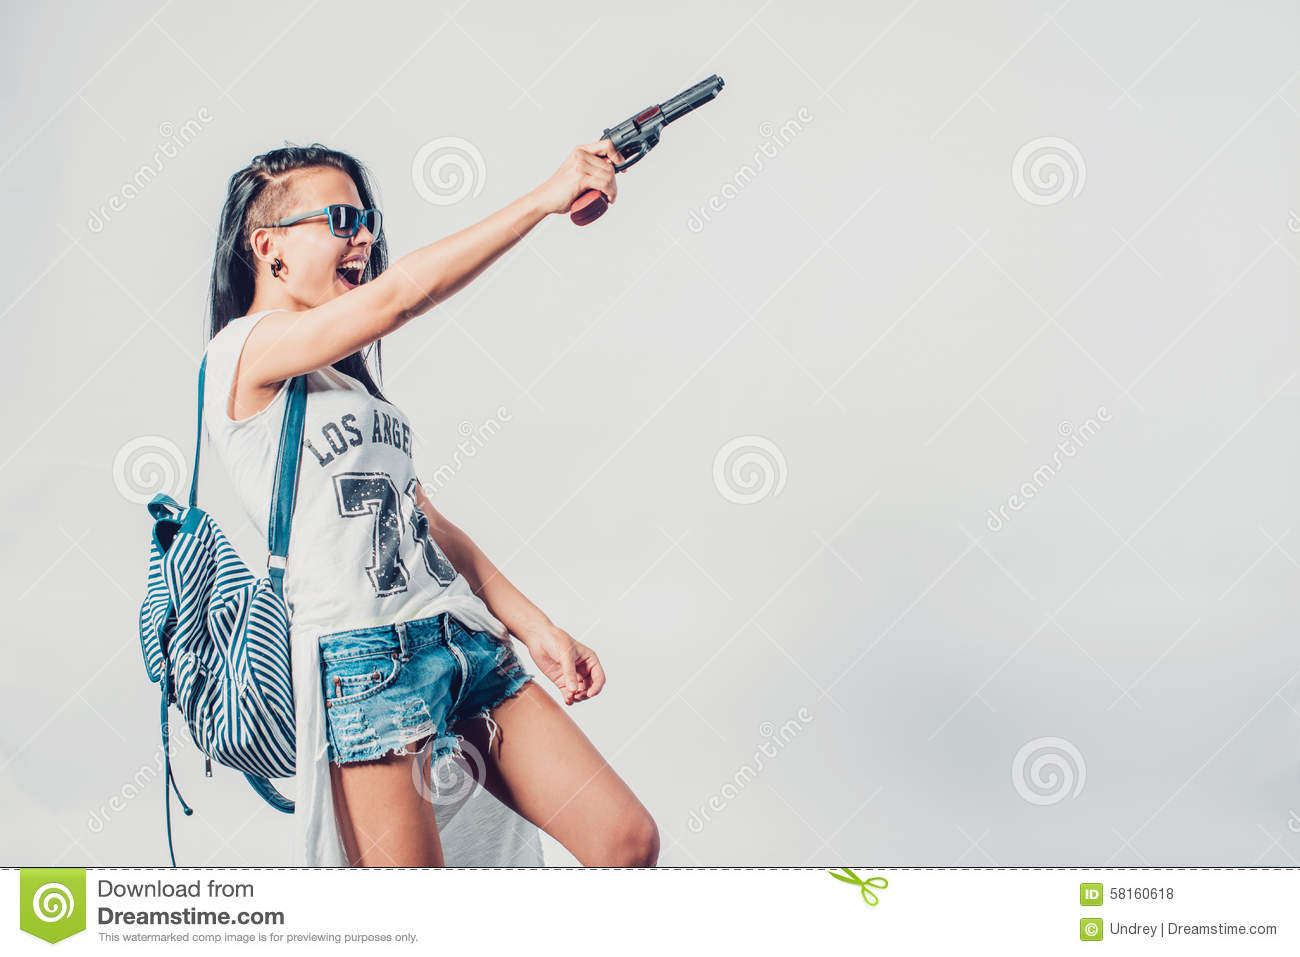 Download Fashion Swag Girl Holding Gun Woman Having Stock Photo , Image of  gangster, glamour